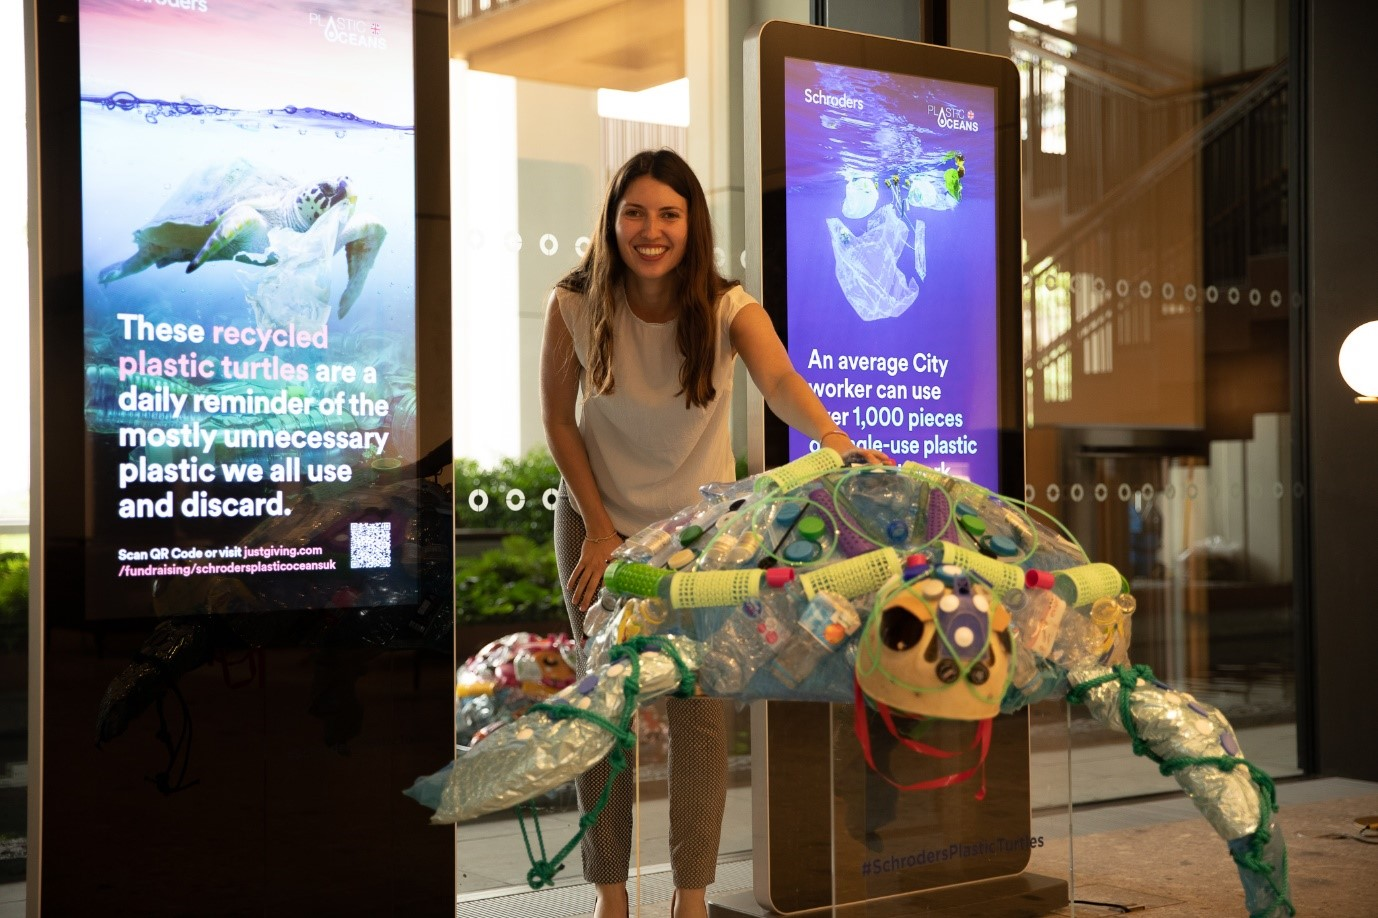 Louisa Minter-Kemp with a plastic turtle